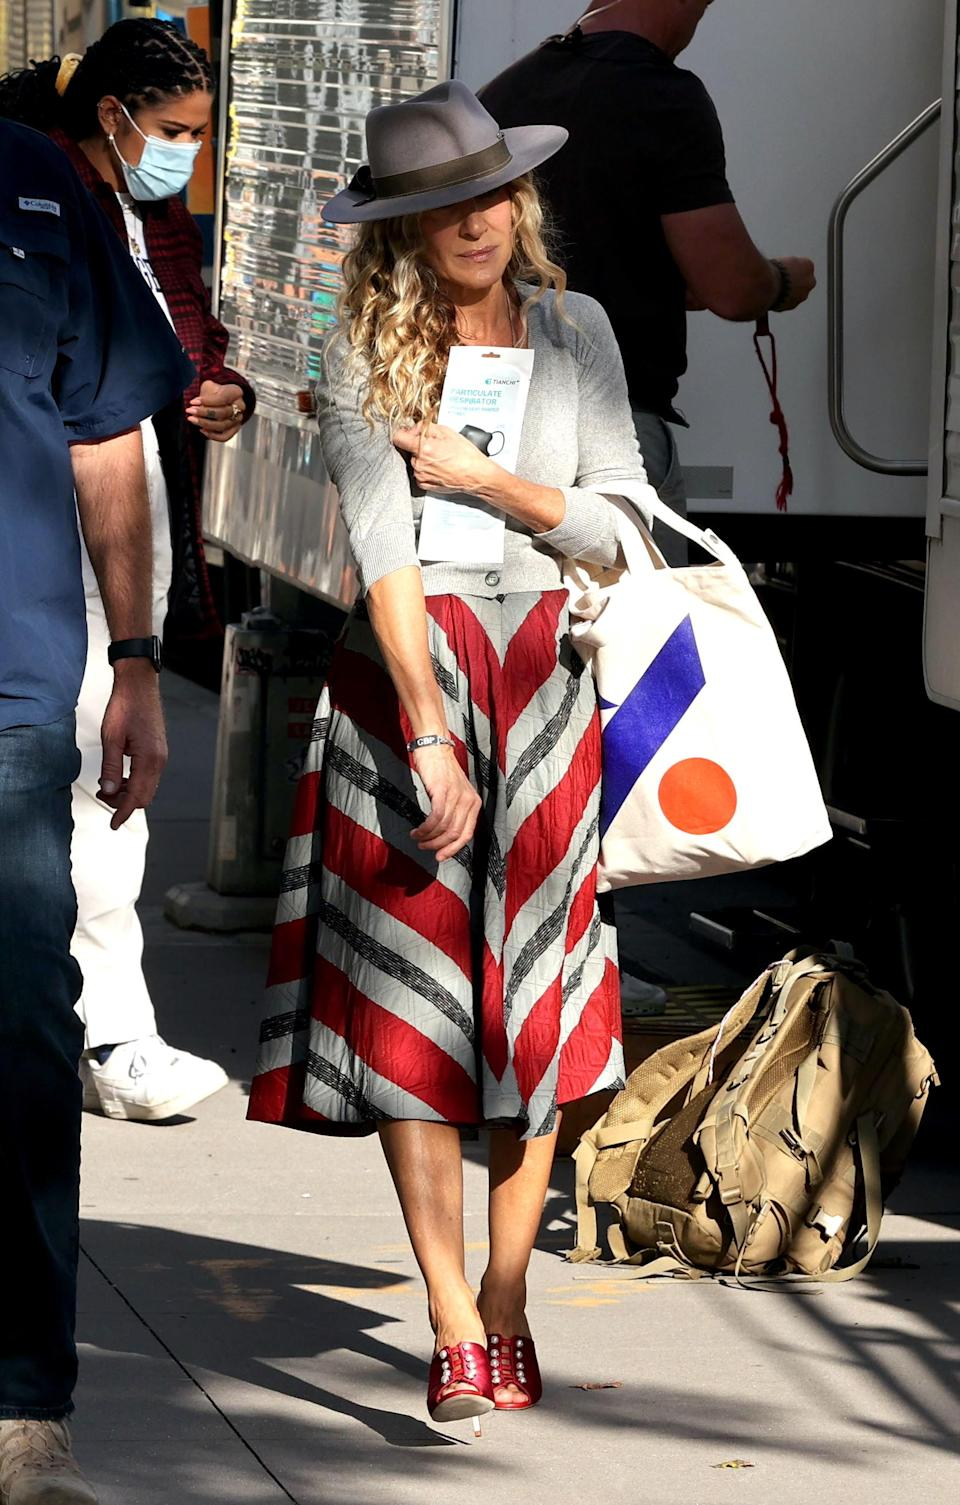 """Sarah Jessica Parker films """"And Just Like That…"""" in New York City. - Credit: Jose Perez/Bauergriffin.com / MEGA"""